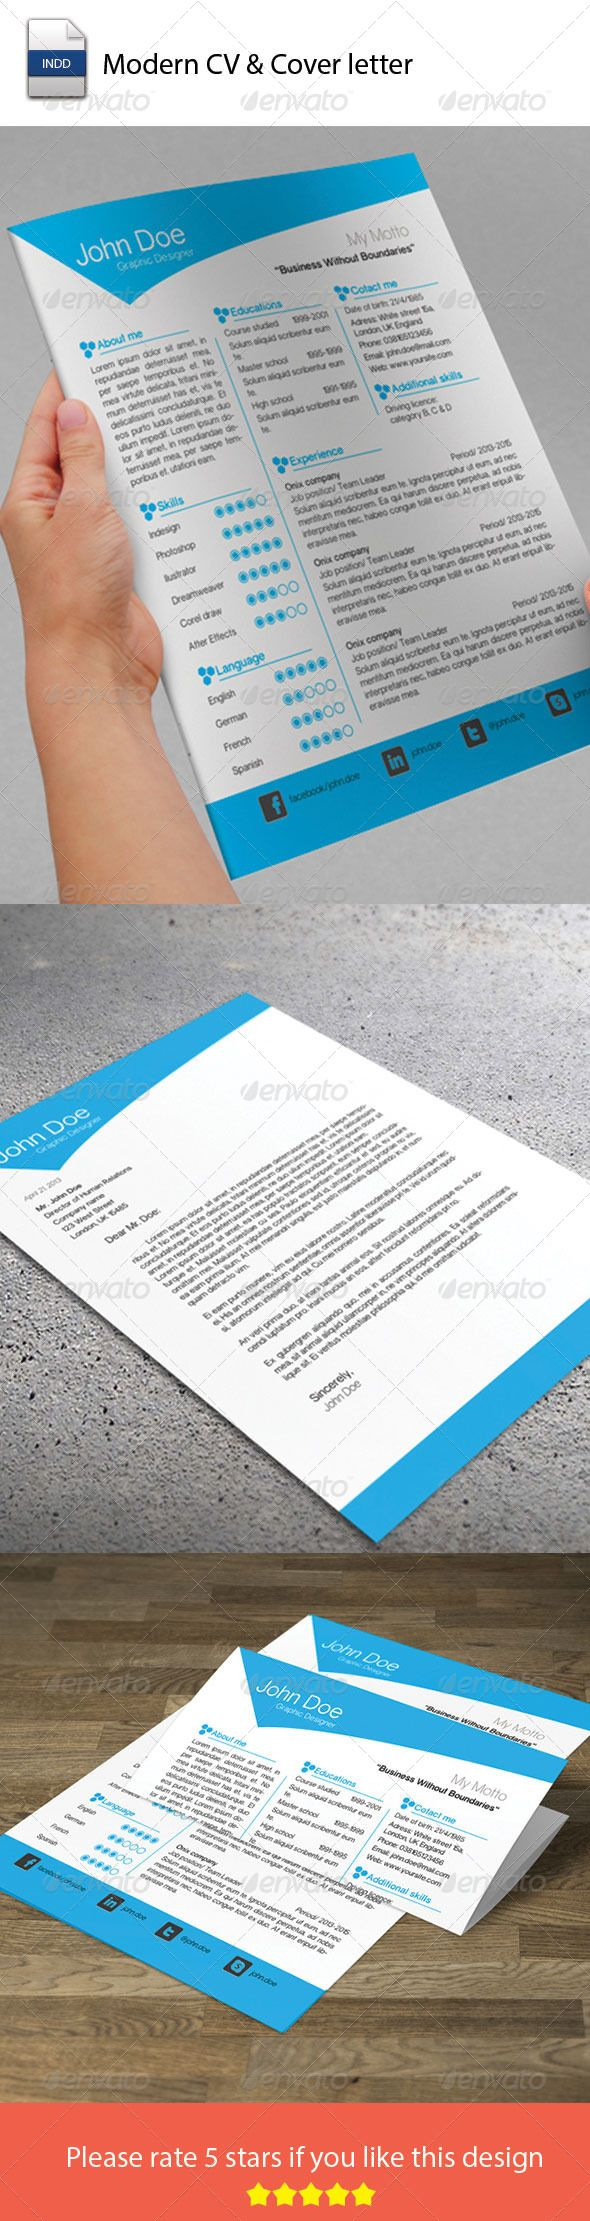 Template For A Cover Letter For A Resume%0A Modern CV  u     Cover Letter